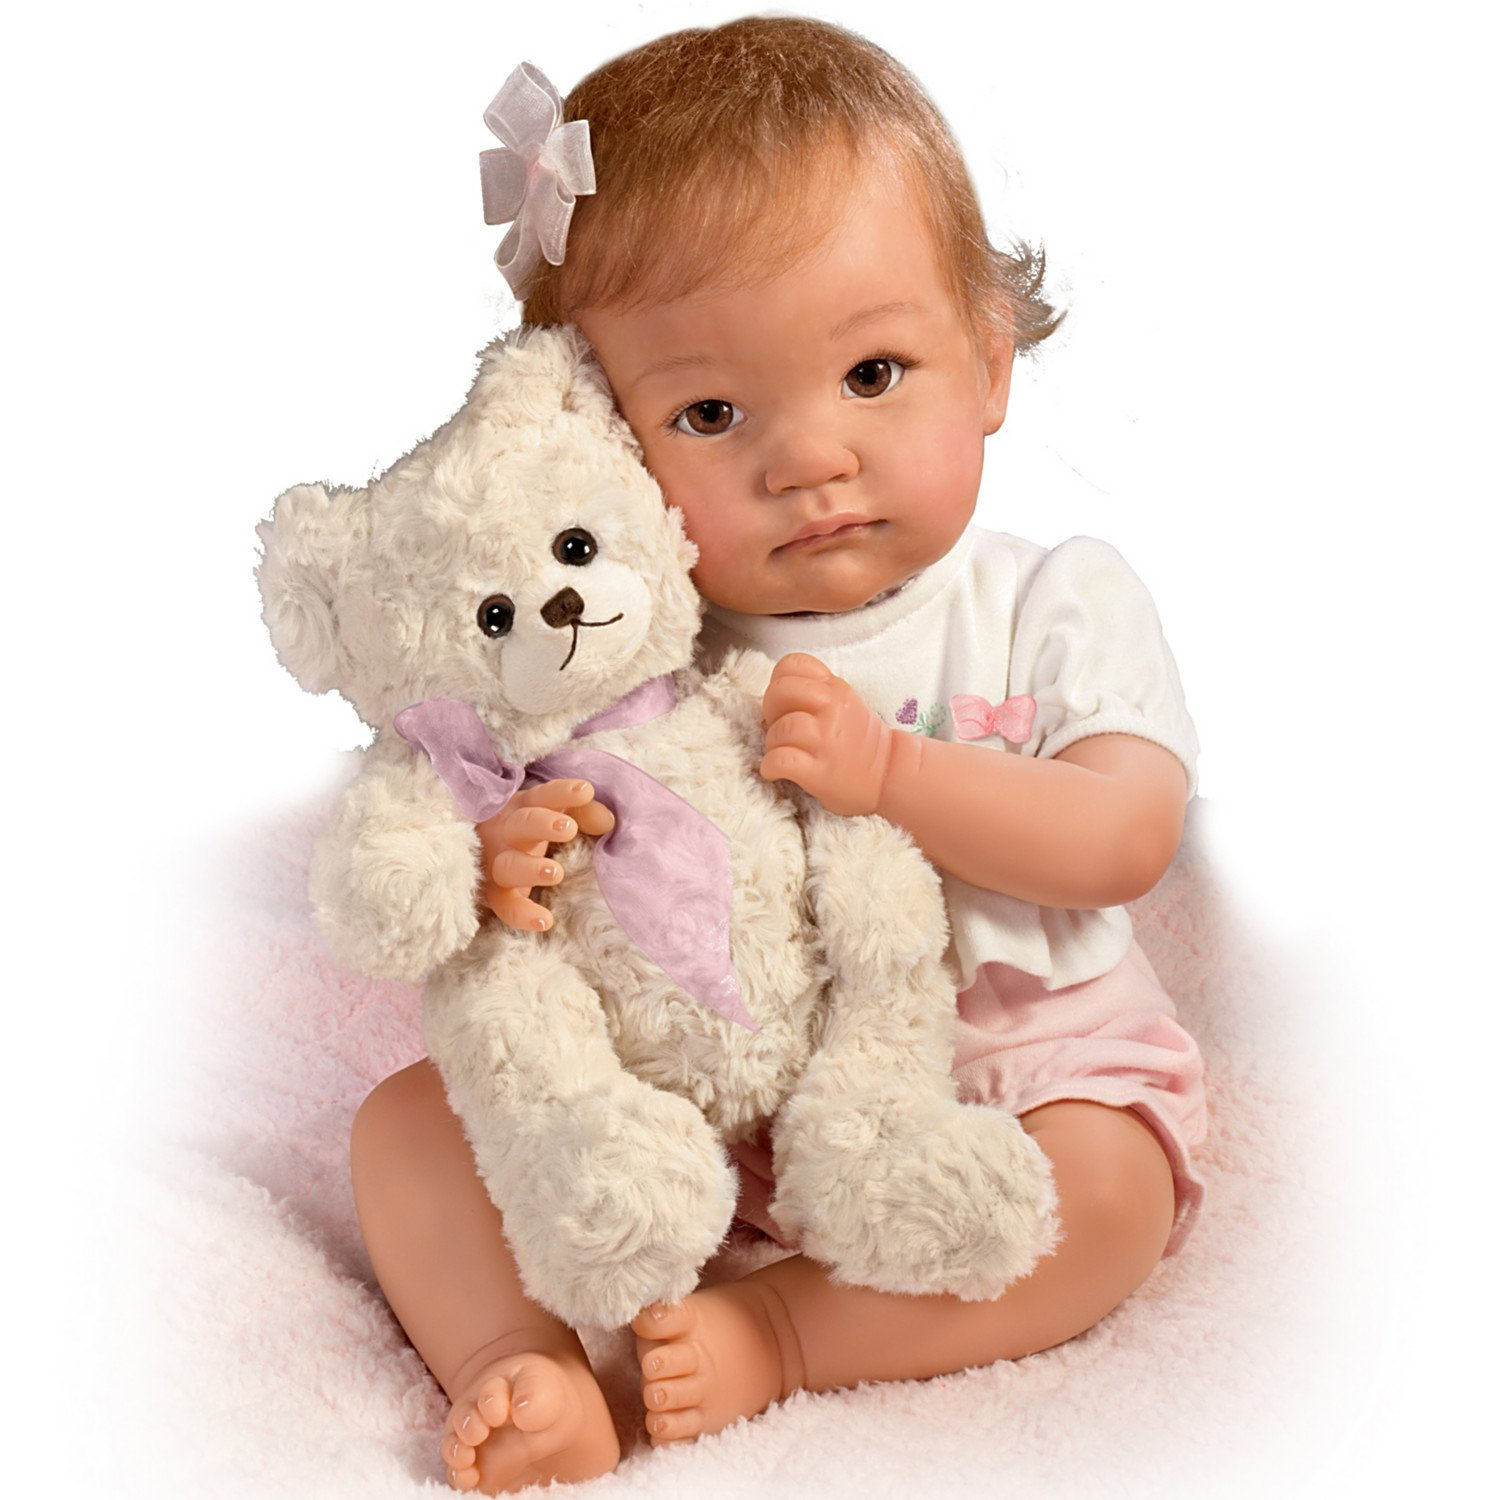 The Ashton-Drake Galleries: I Promise To Love You, Teddy Baby Doll With Toy Bear by The Ashton-Drake Galleries by The Ashton-Drake Galleries